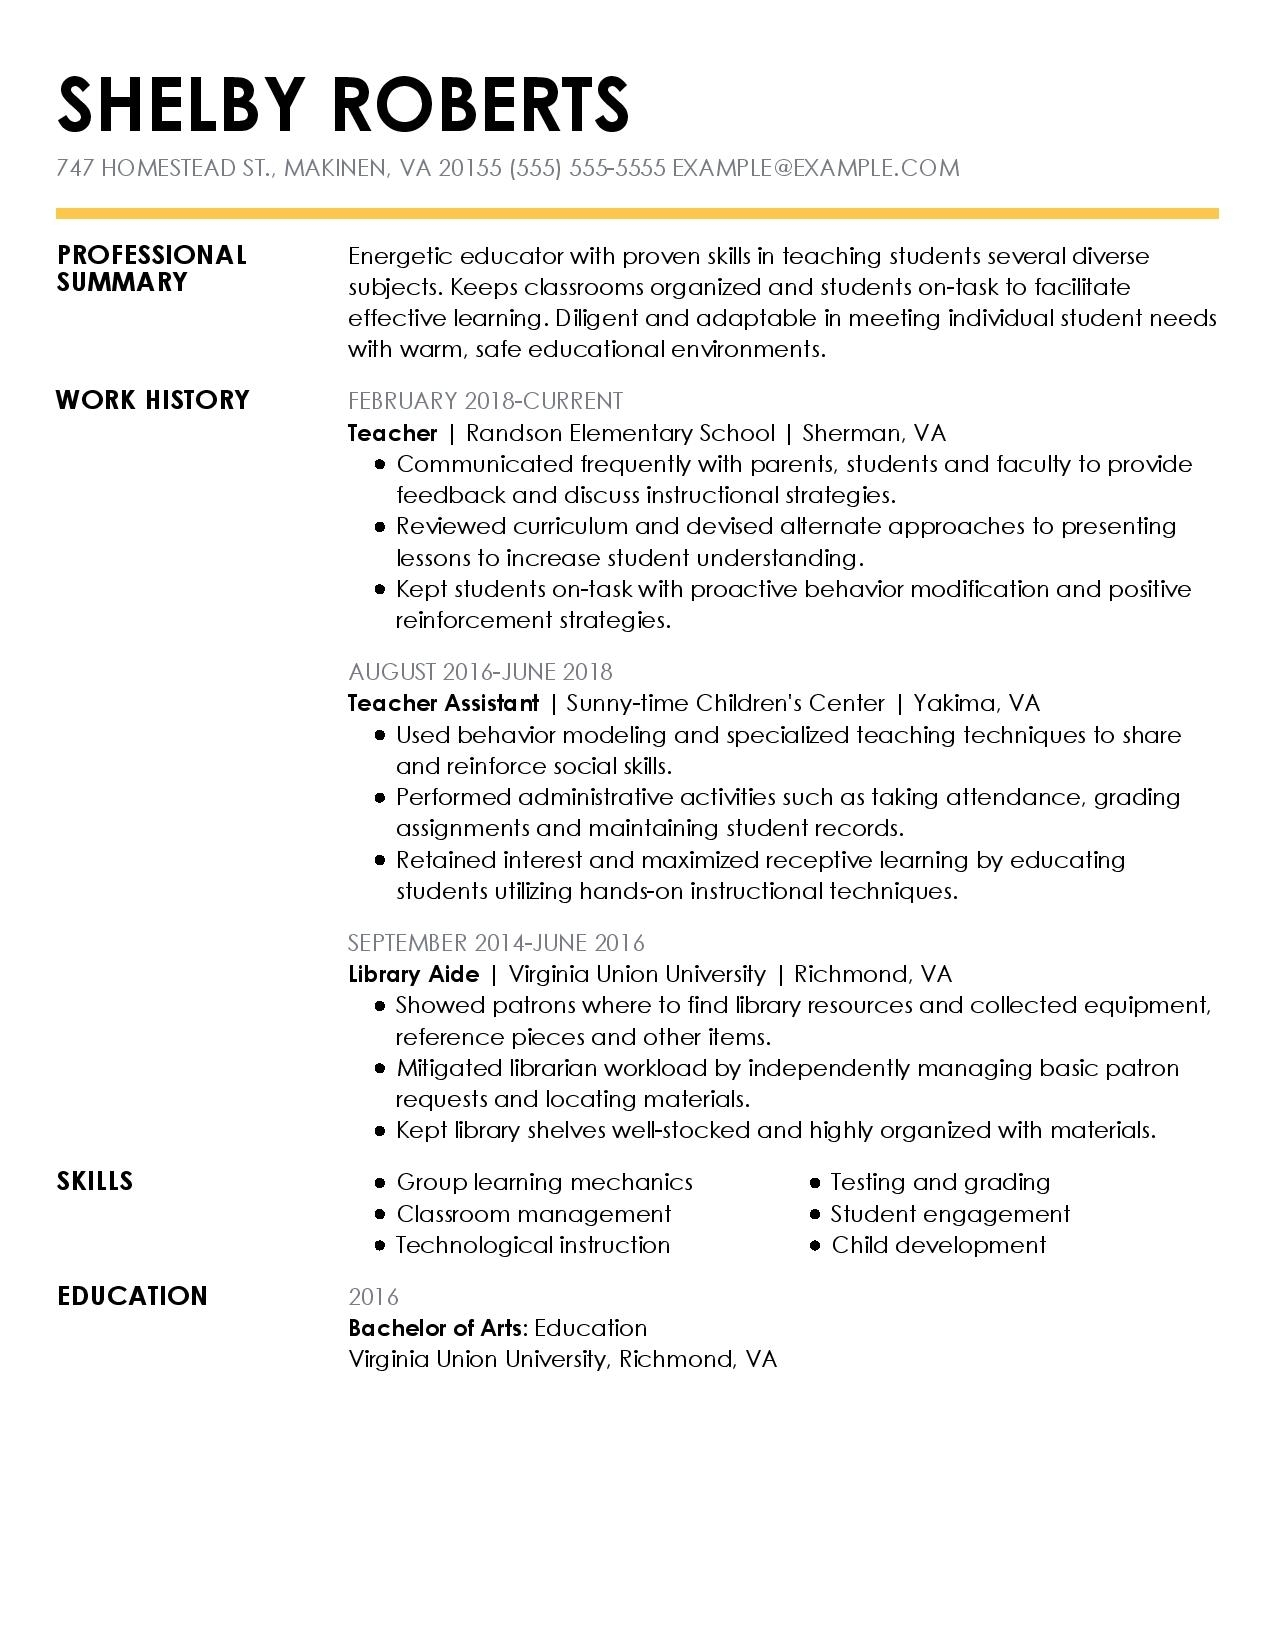 Resume ~ Coloring Free Resume Examples View Samples Of